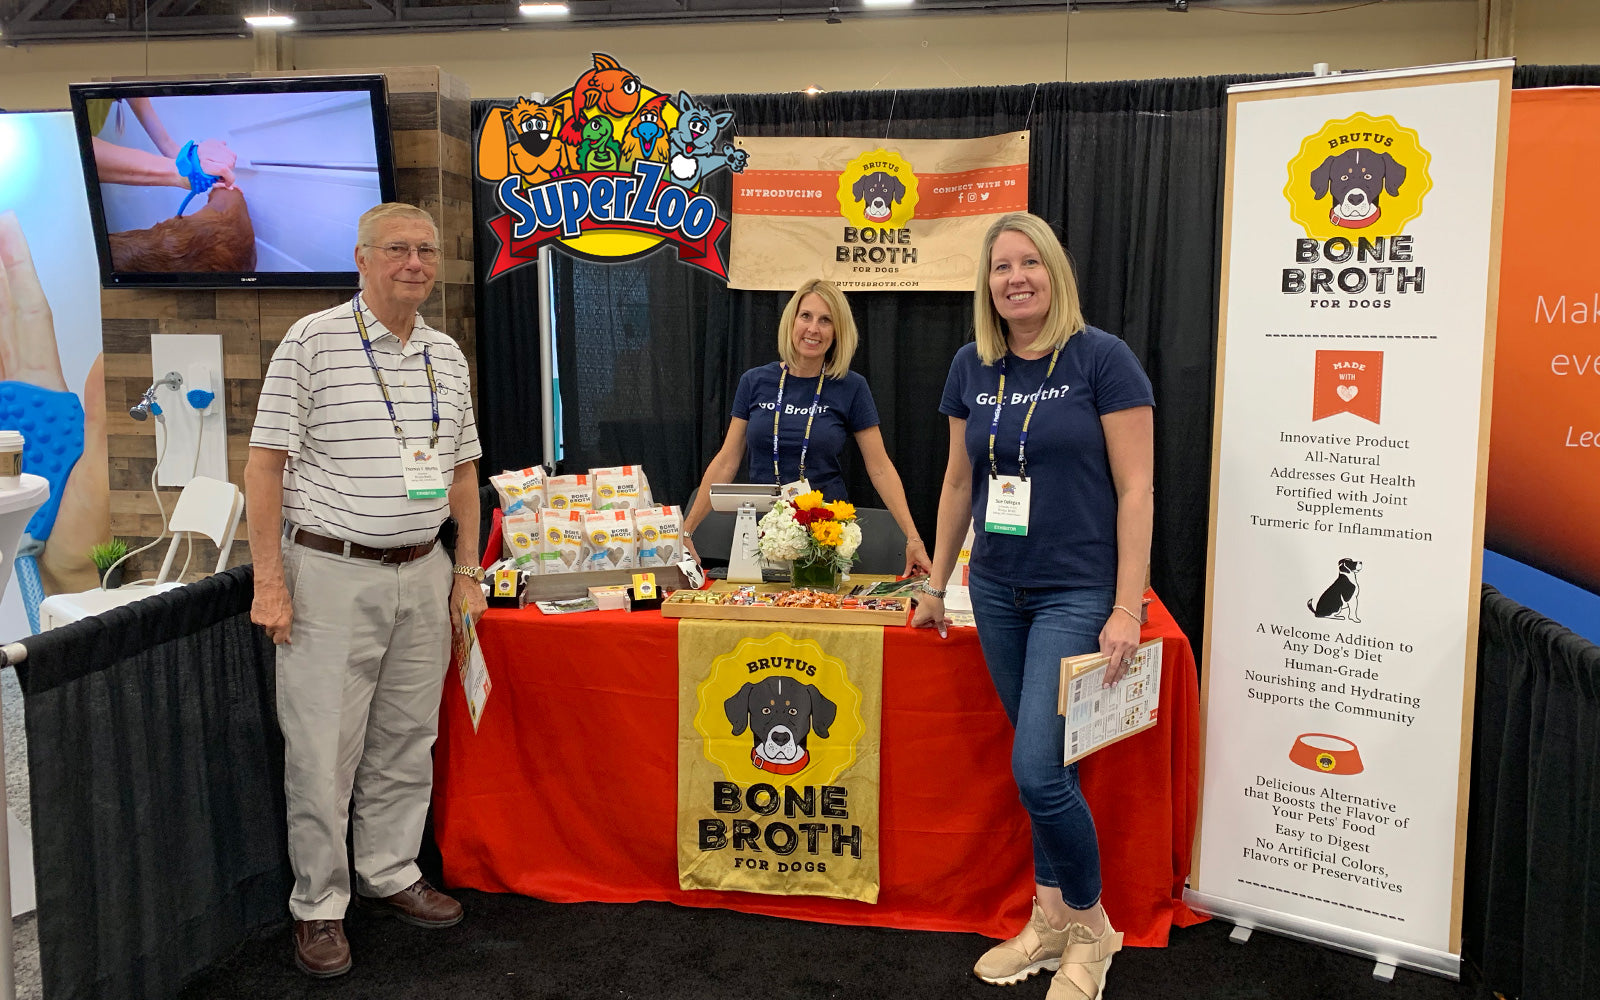 Brutus Biscuit Product Line Launches at SuperZoo